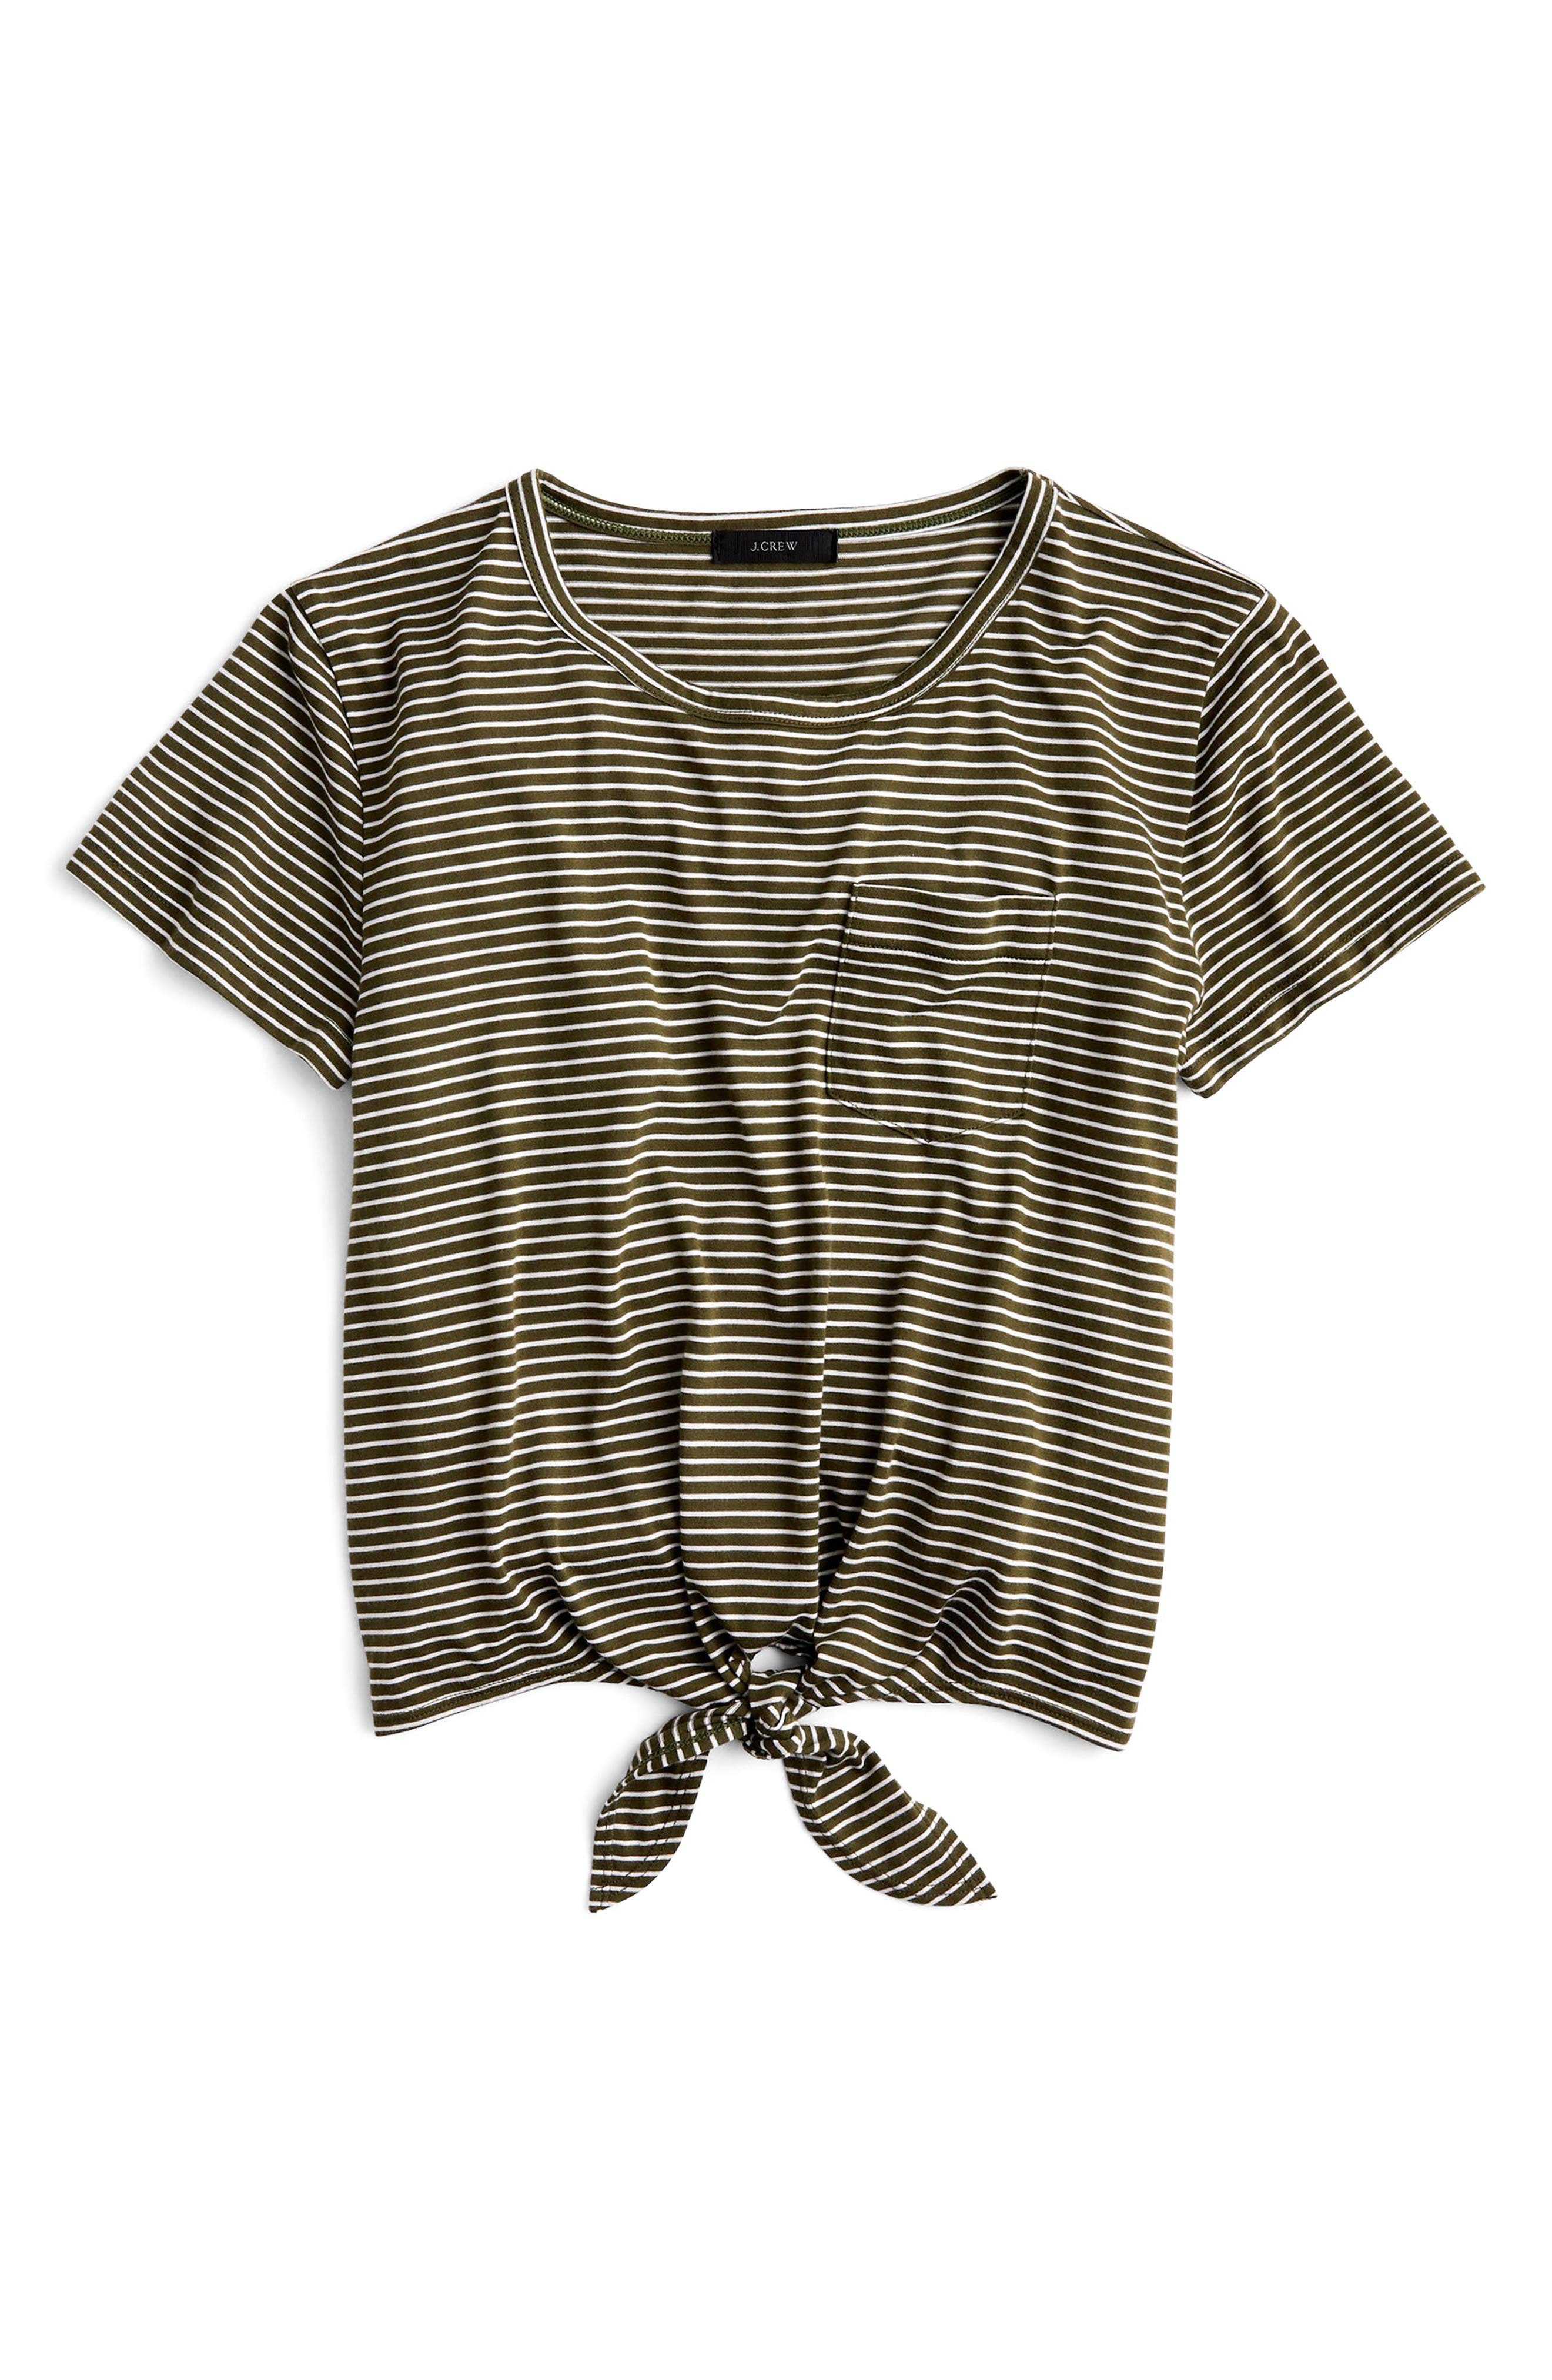 Knotted Stripe Pocket Tee,                             Alternate thumbnail 3, color,                             White Loden Green